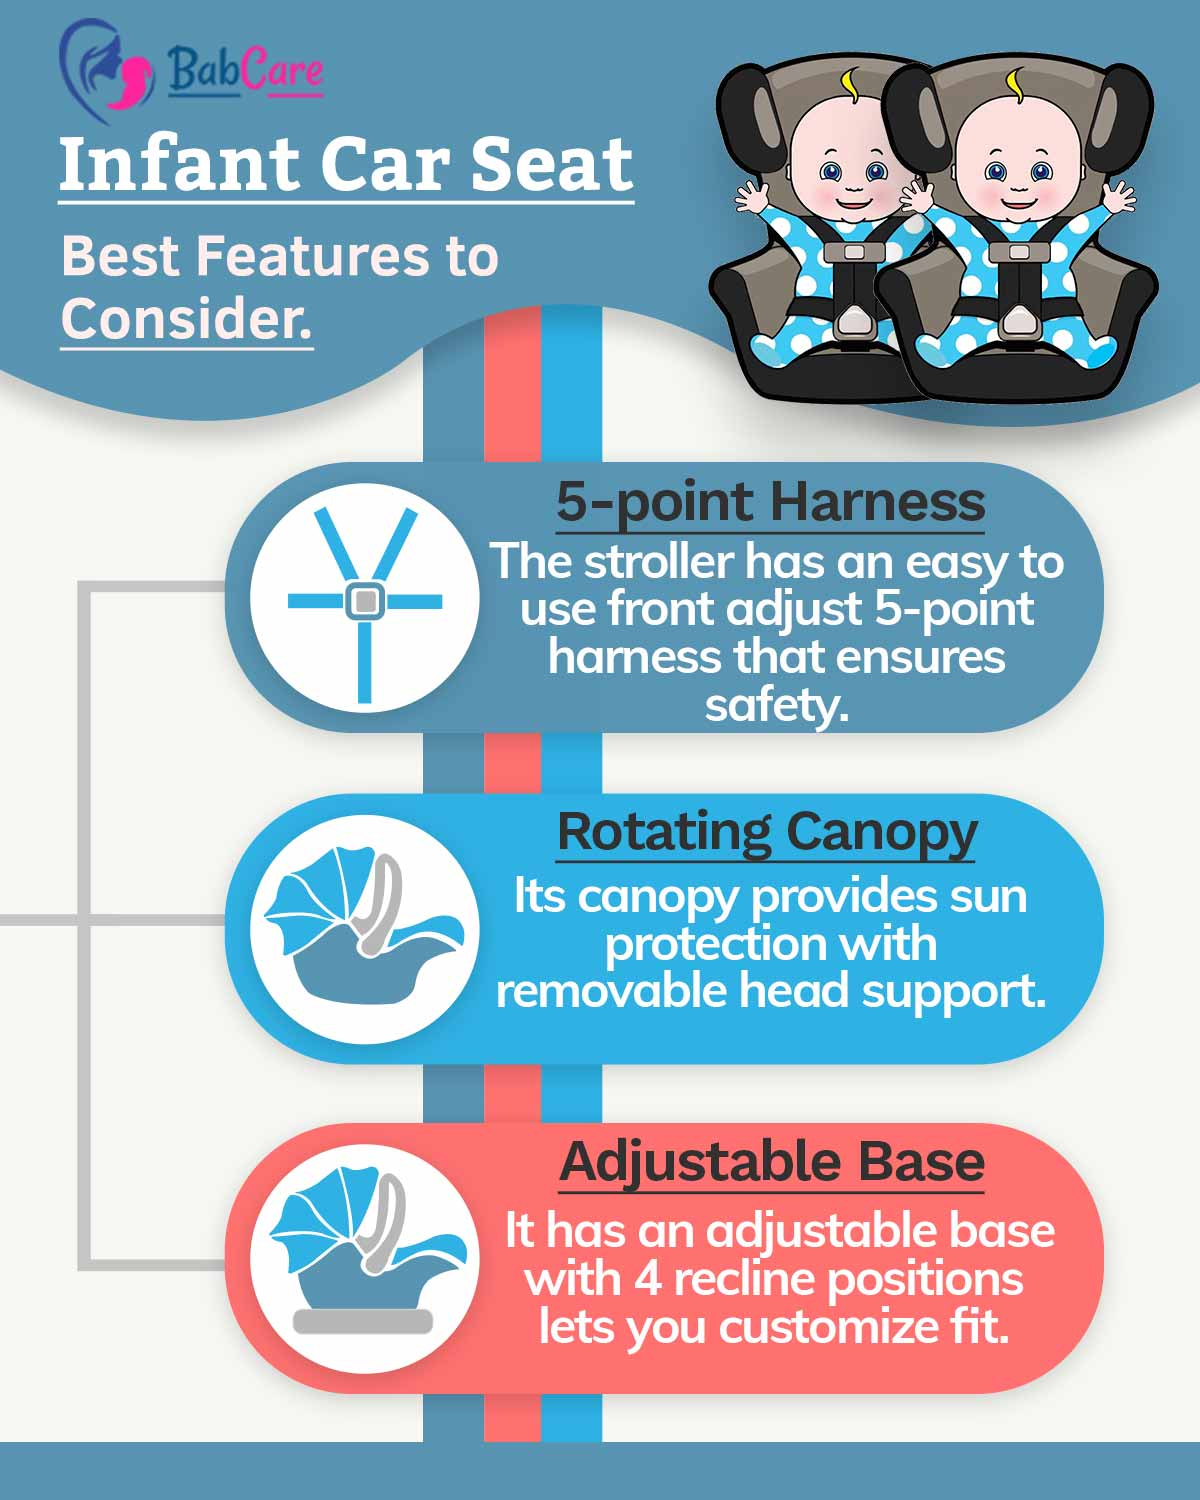 Best Infographic graco 35 car seat has 5-point harness, rotating canopy and adjustable base